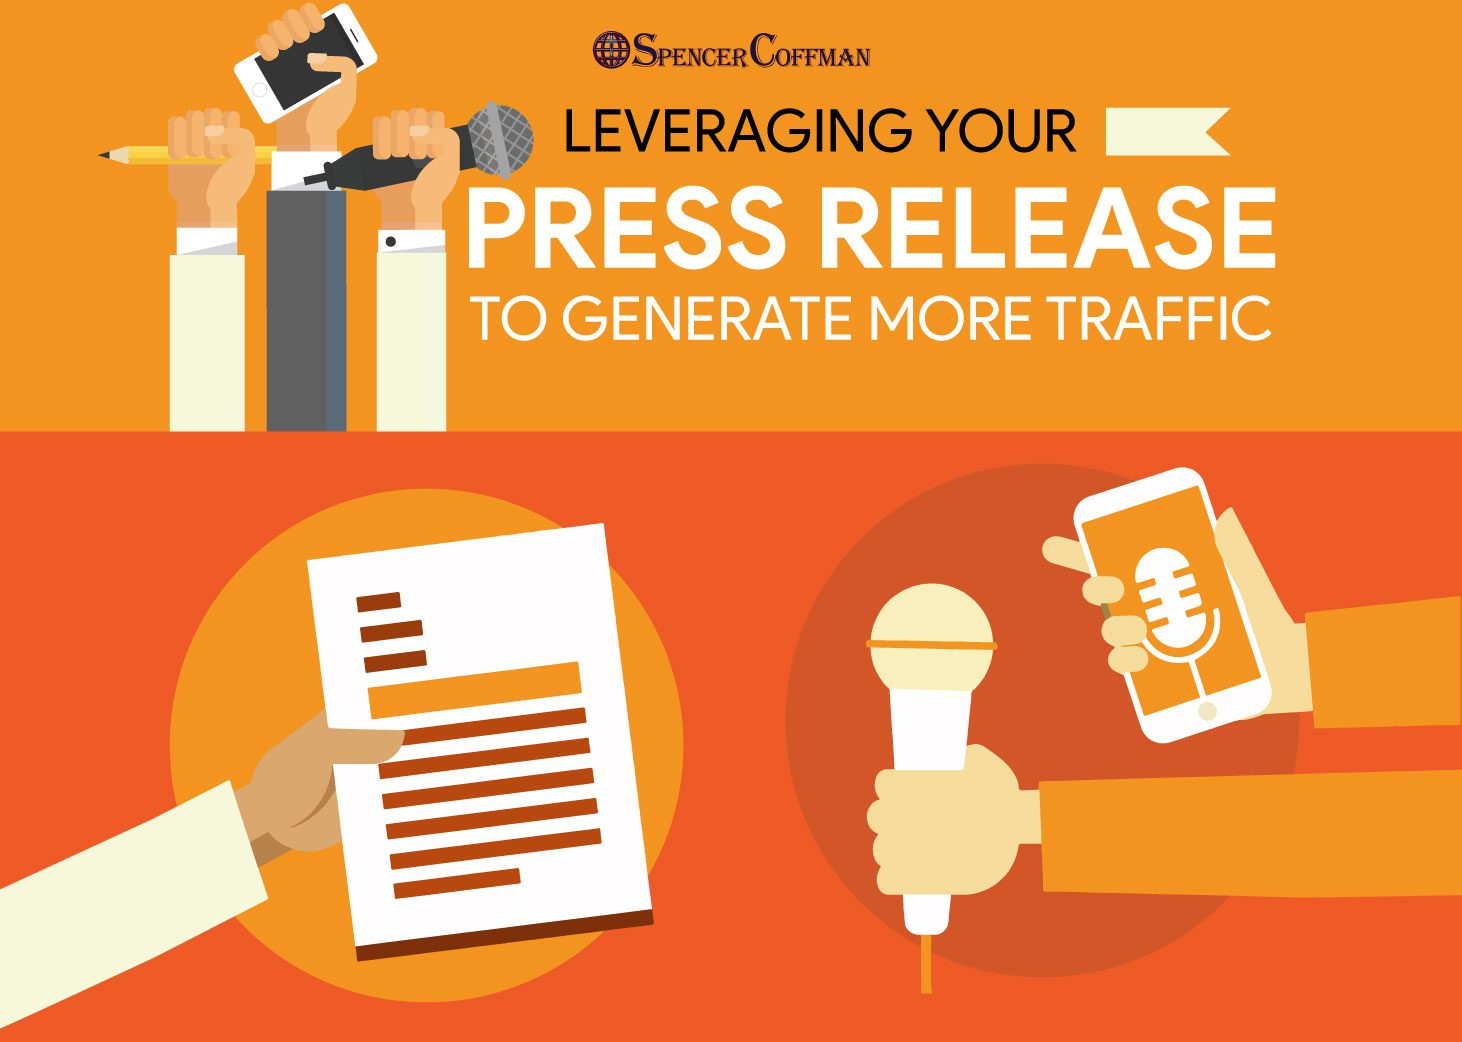 Leveraging Your Press Release To Generate More Traffic - Spencer Coffman